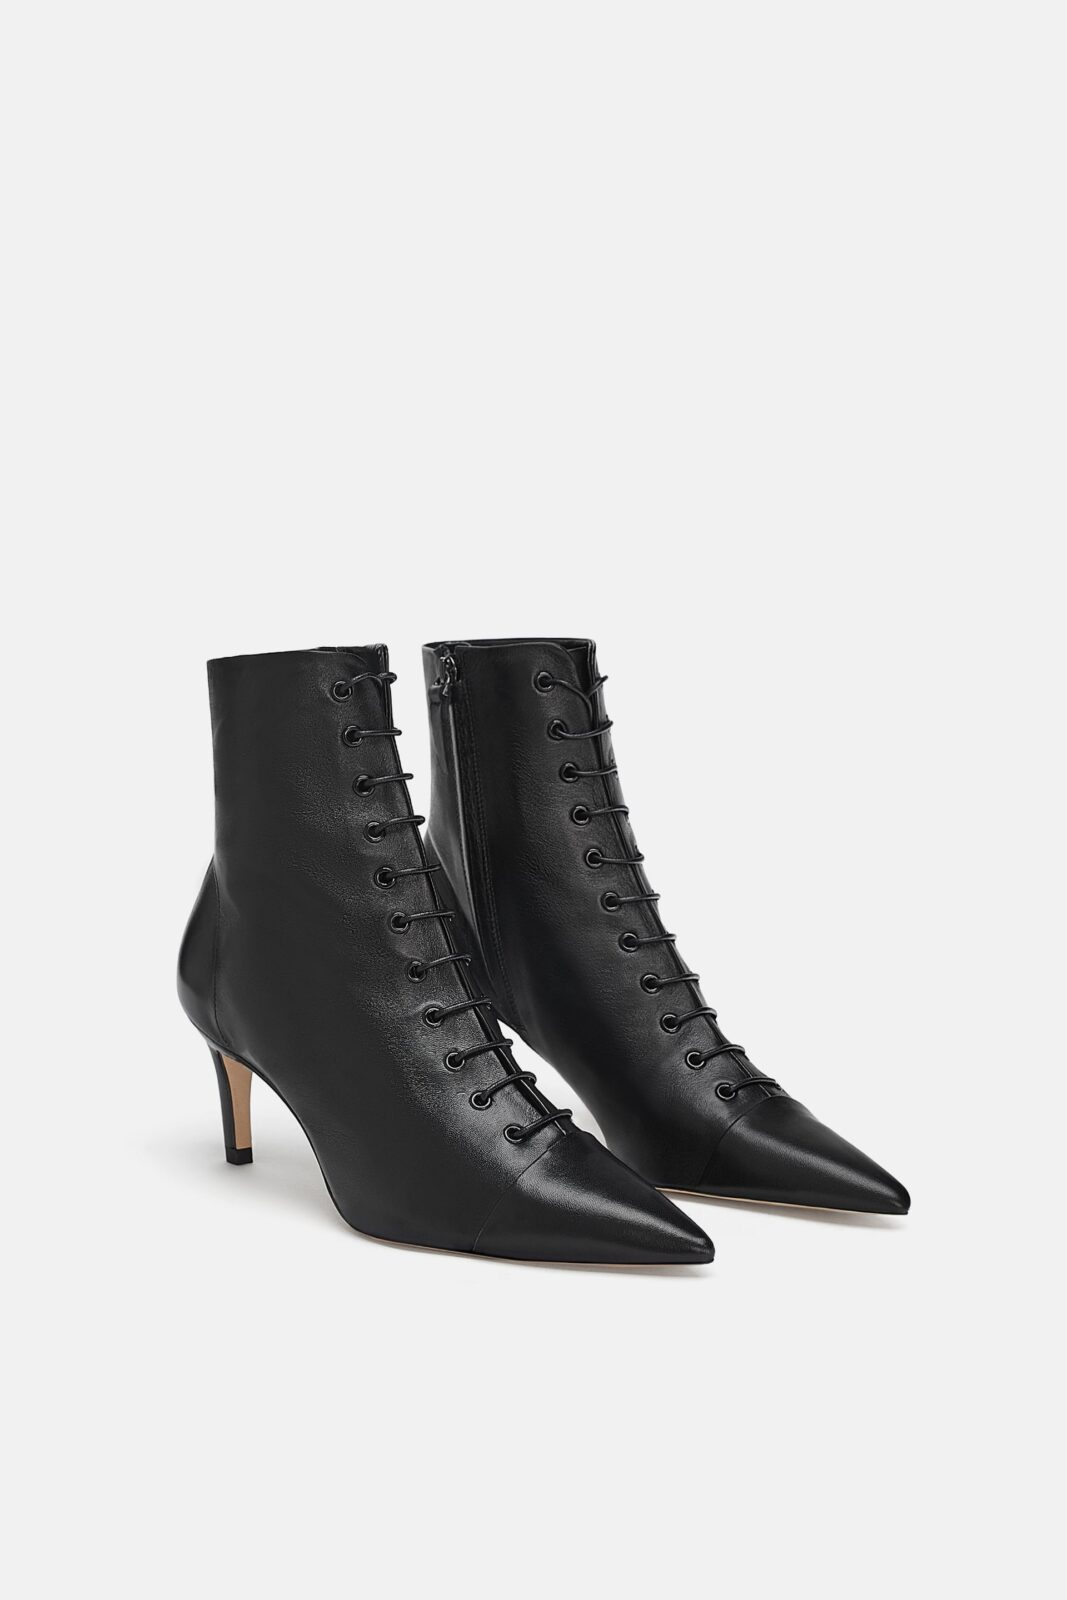 Shop For Your Star Sign edit seven zara boots